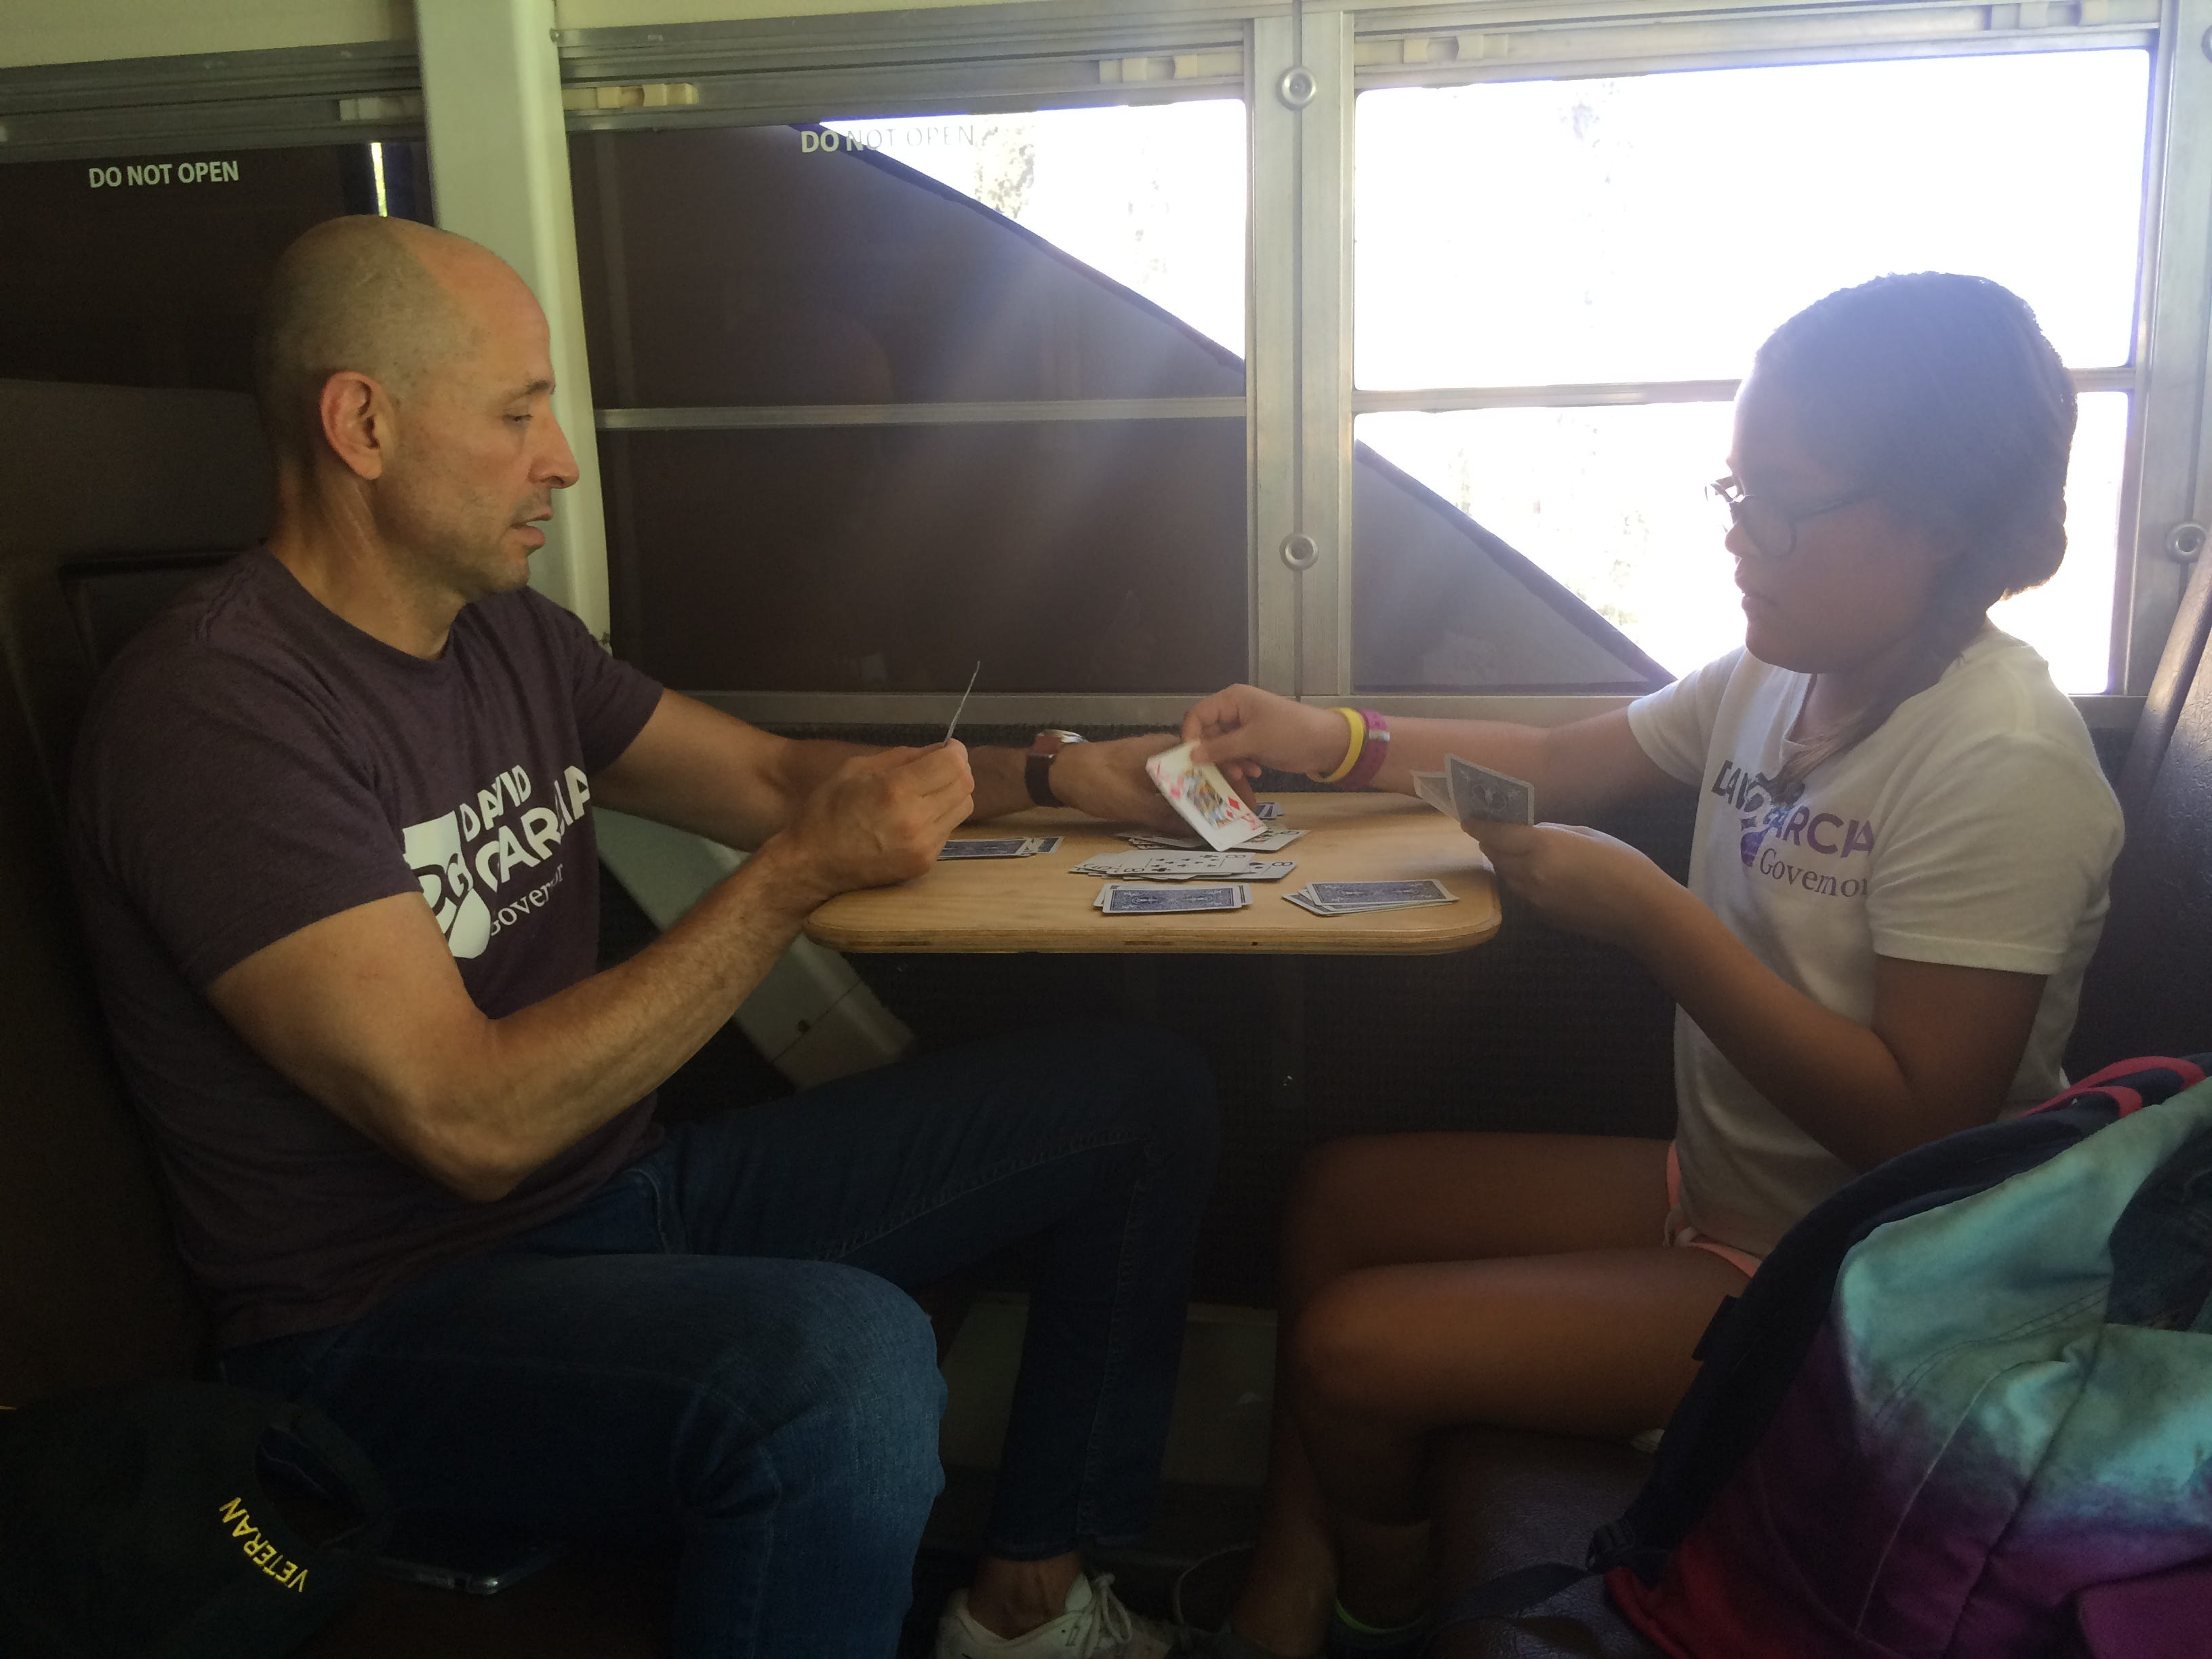 David Garcia, Democratic candidate for Arizona governor, plays speed, a card game, against his daughter Lola on Aug. 19, 2018. The game is often used to pass time during trips in the campaign's converted school bus.